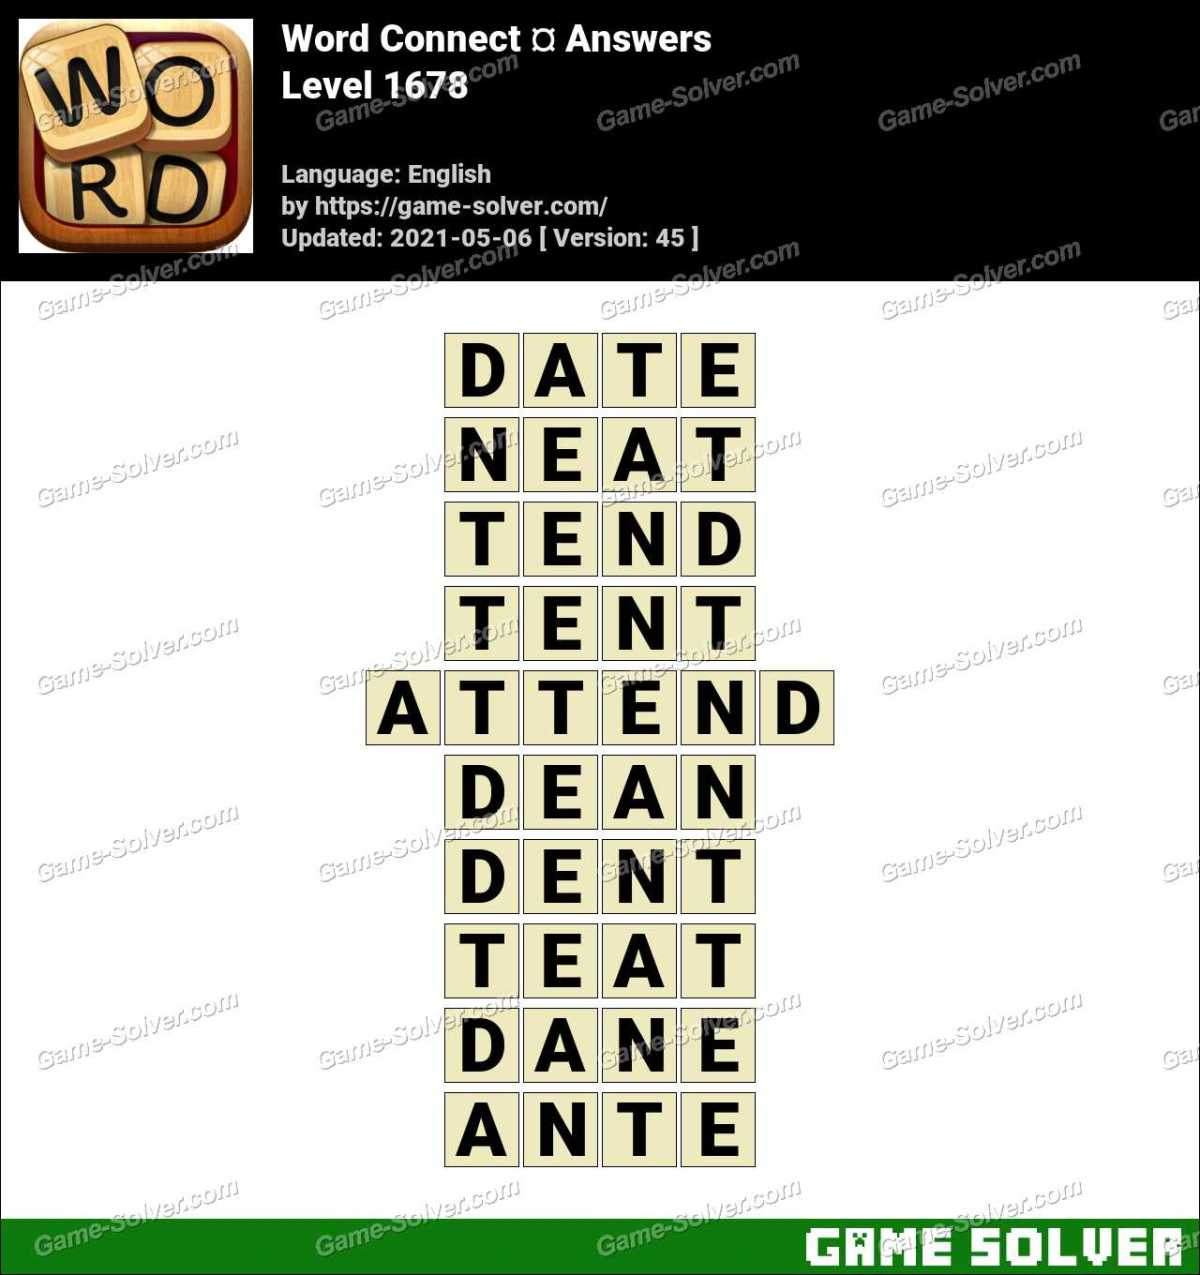 Word Connect Level 1678 Answers